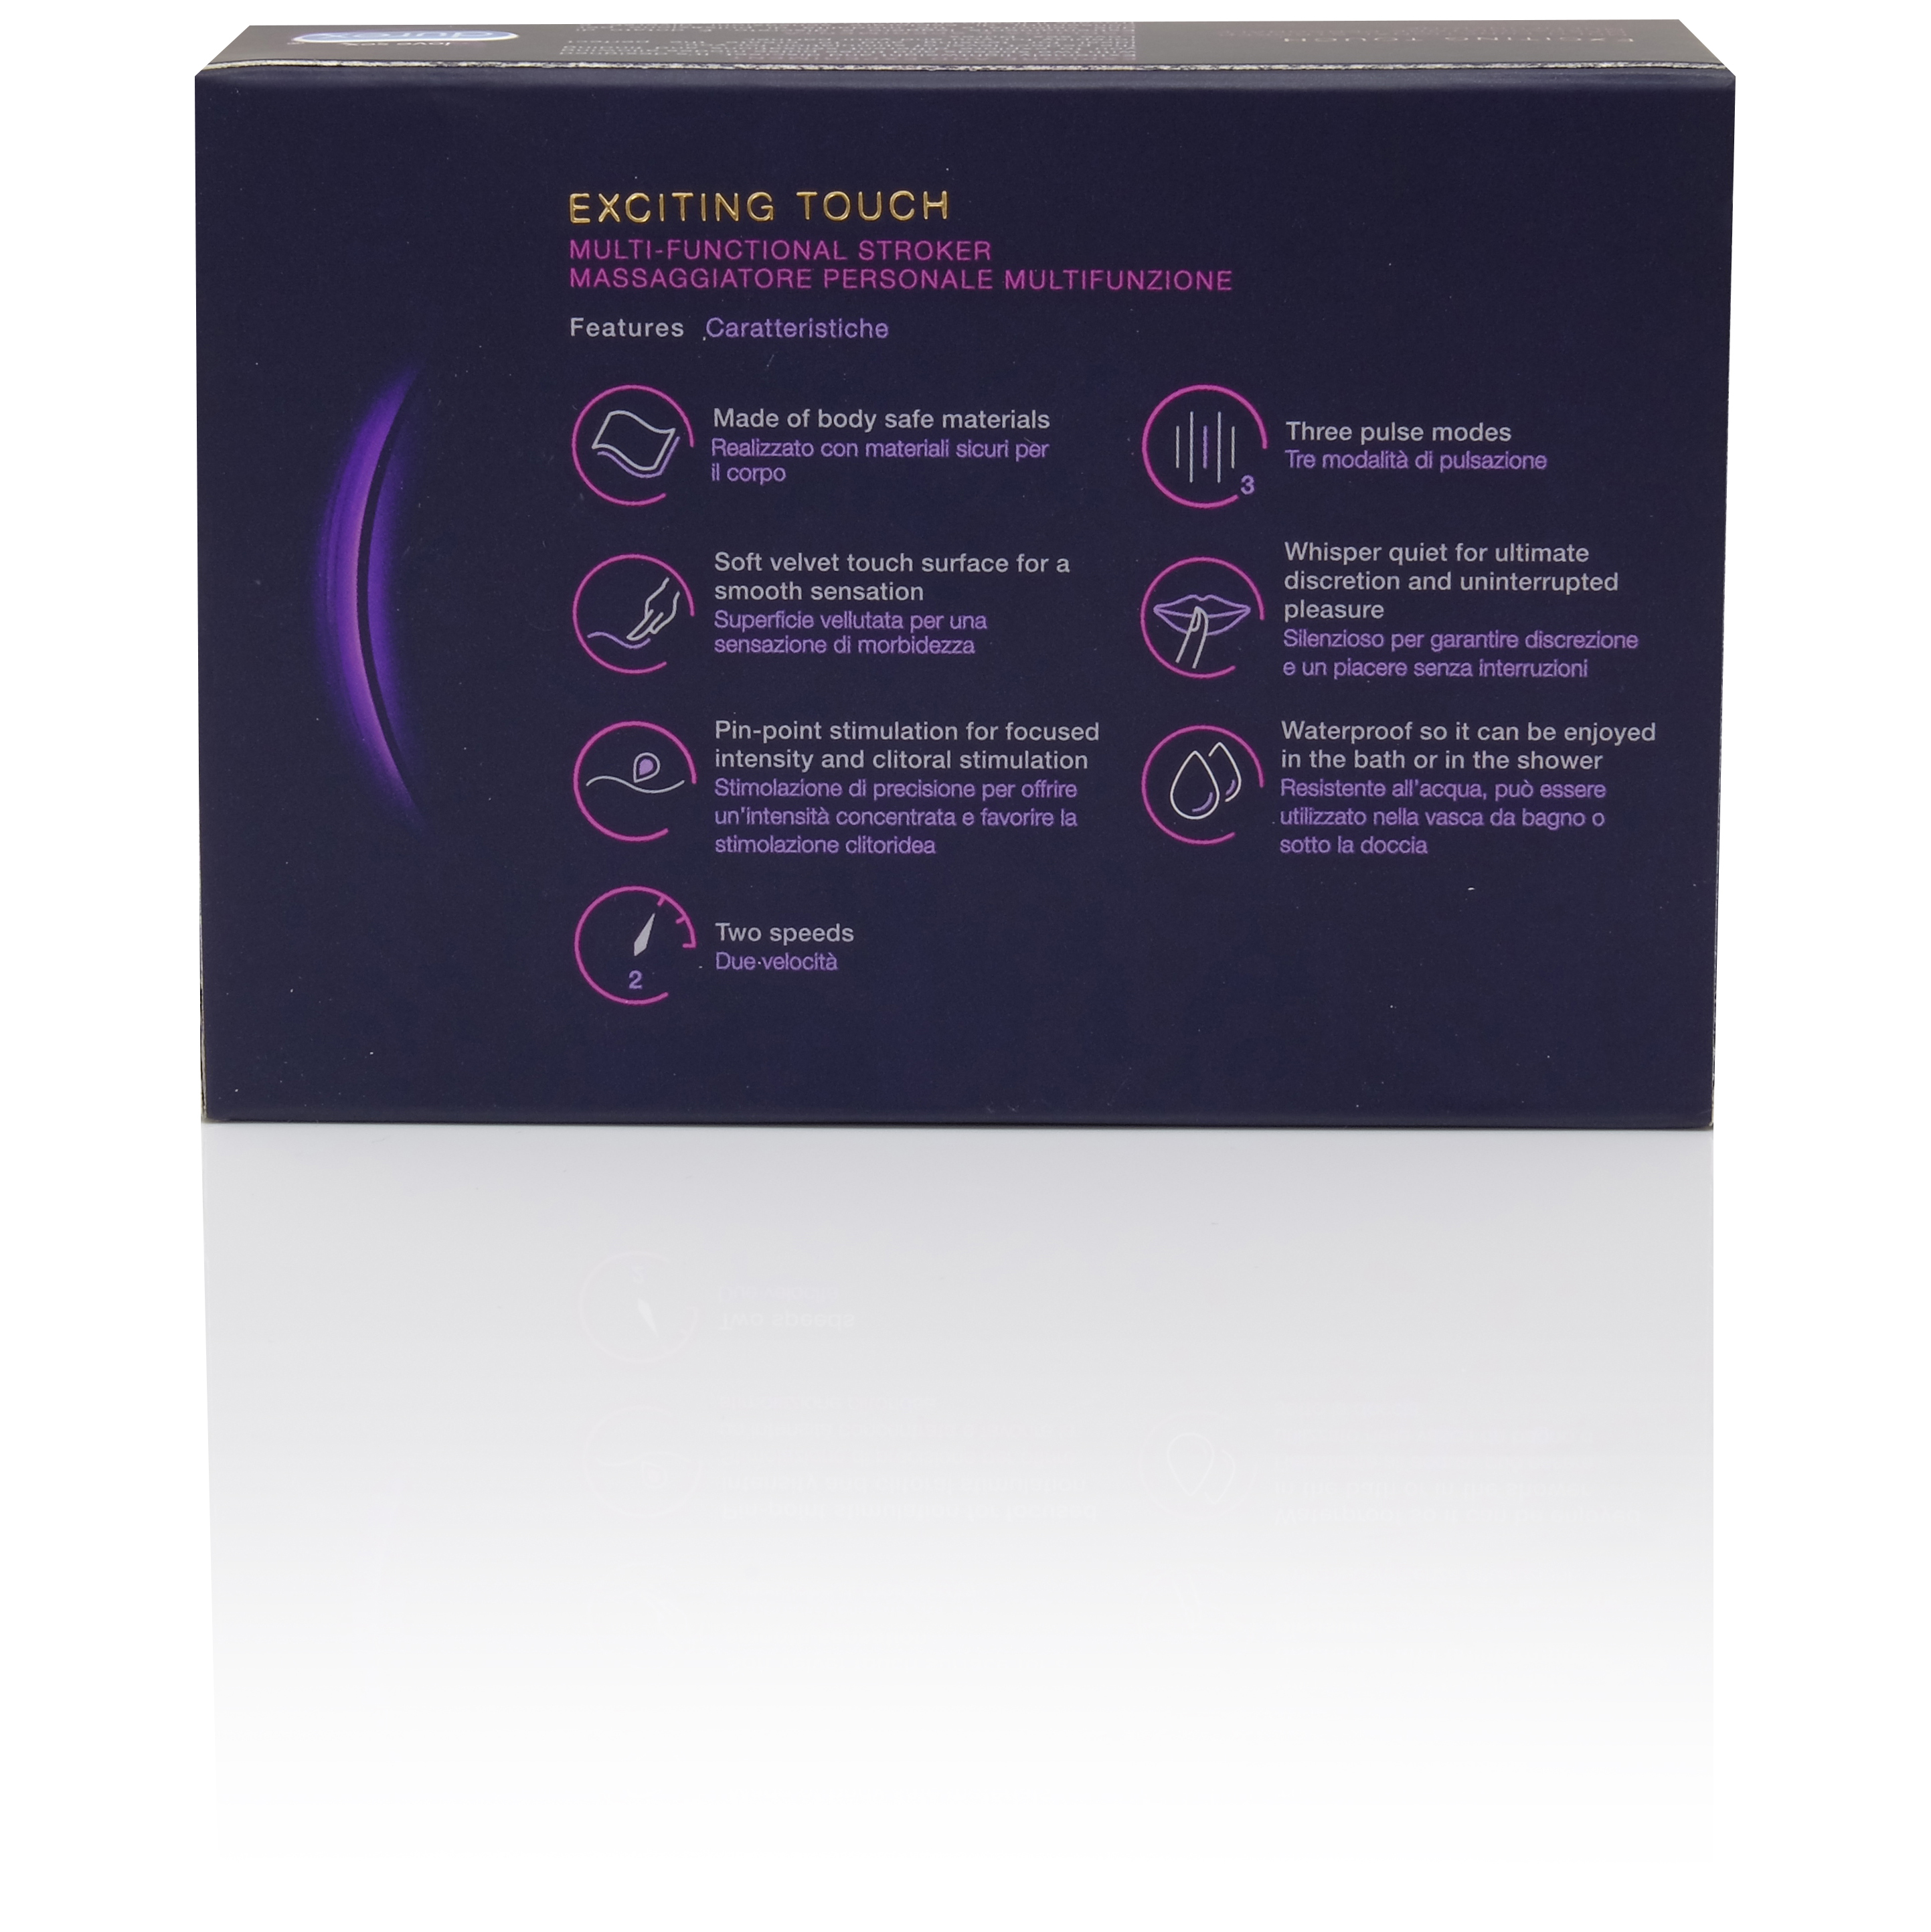 Durex Exciting Touch Stroke Vibrator